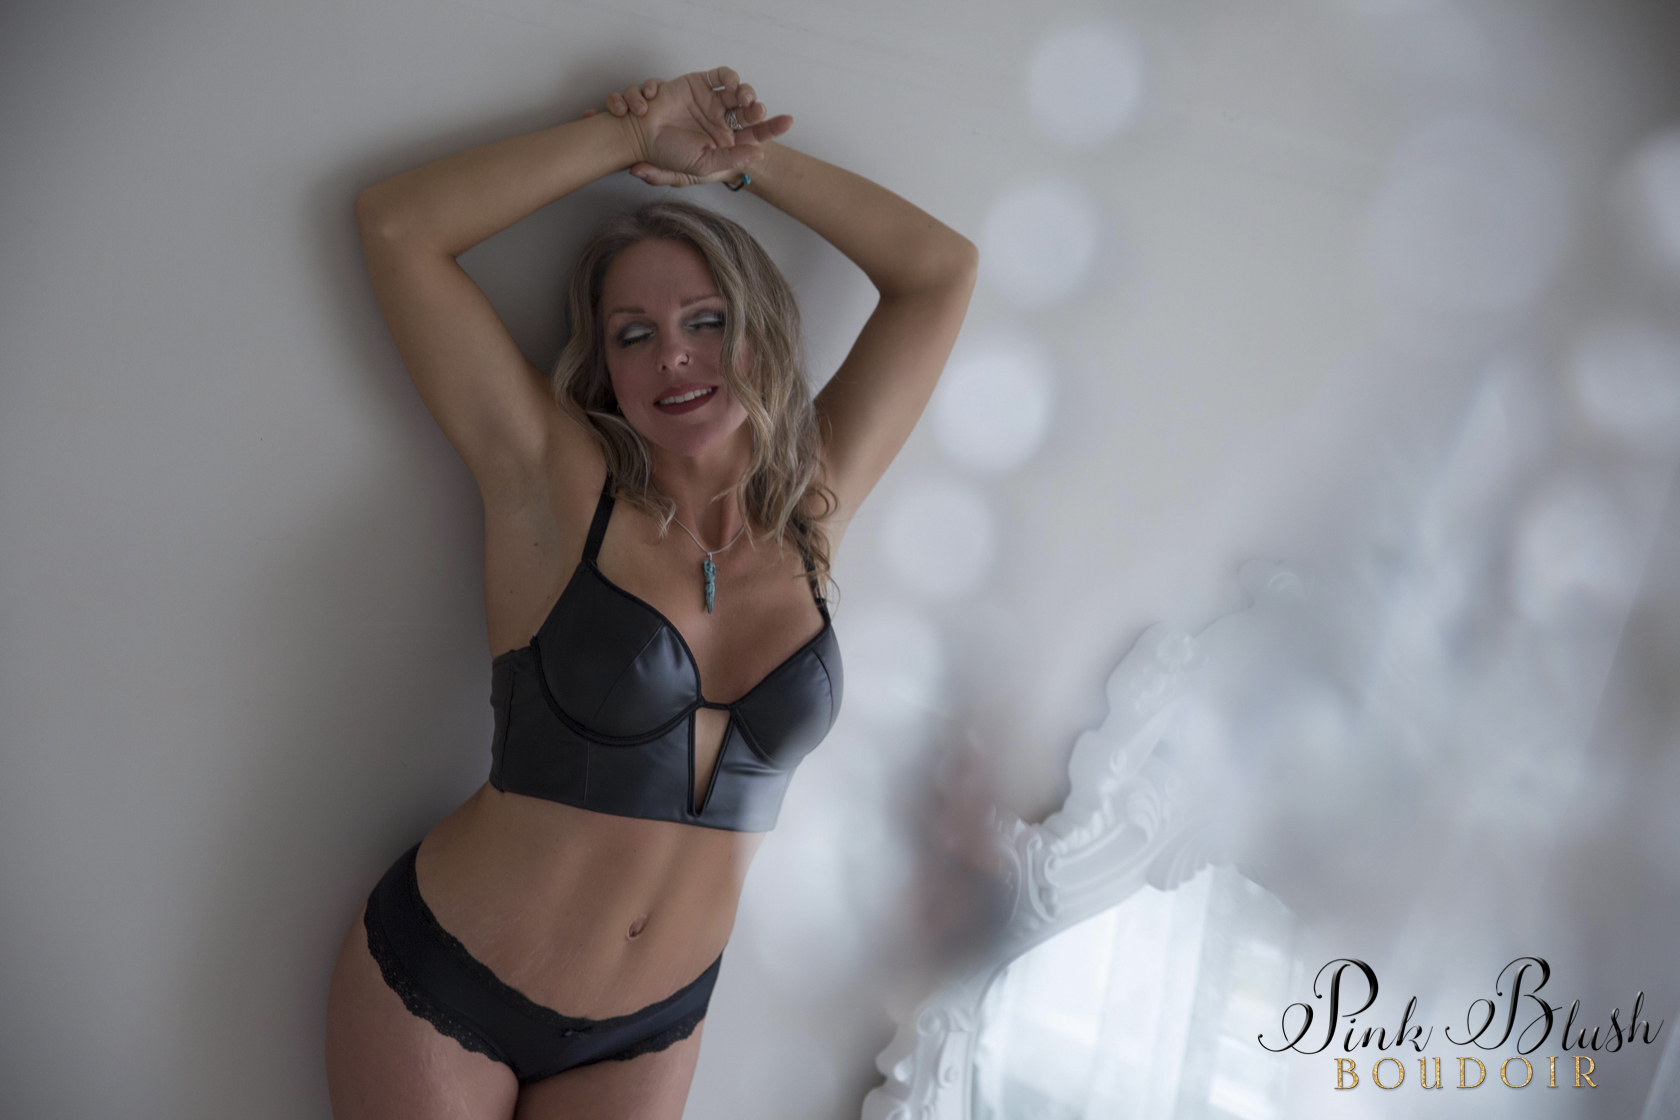 boudoir photos a woman in a black bra and panty set against a wall